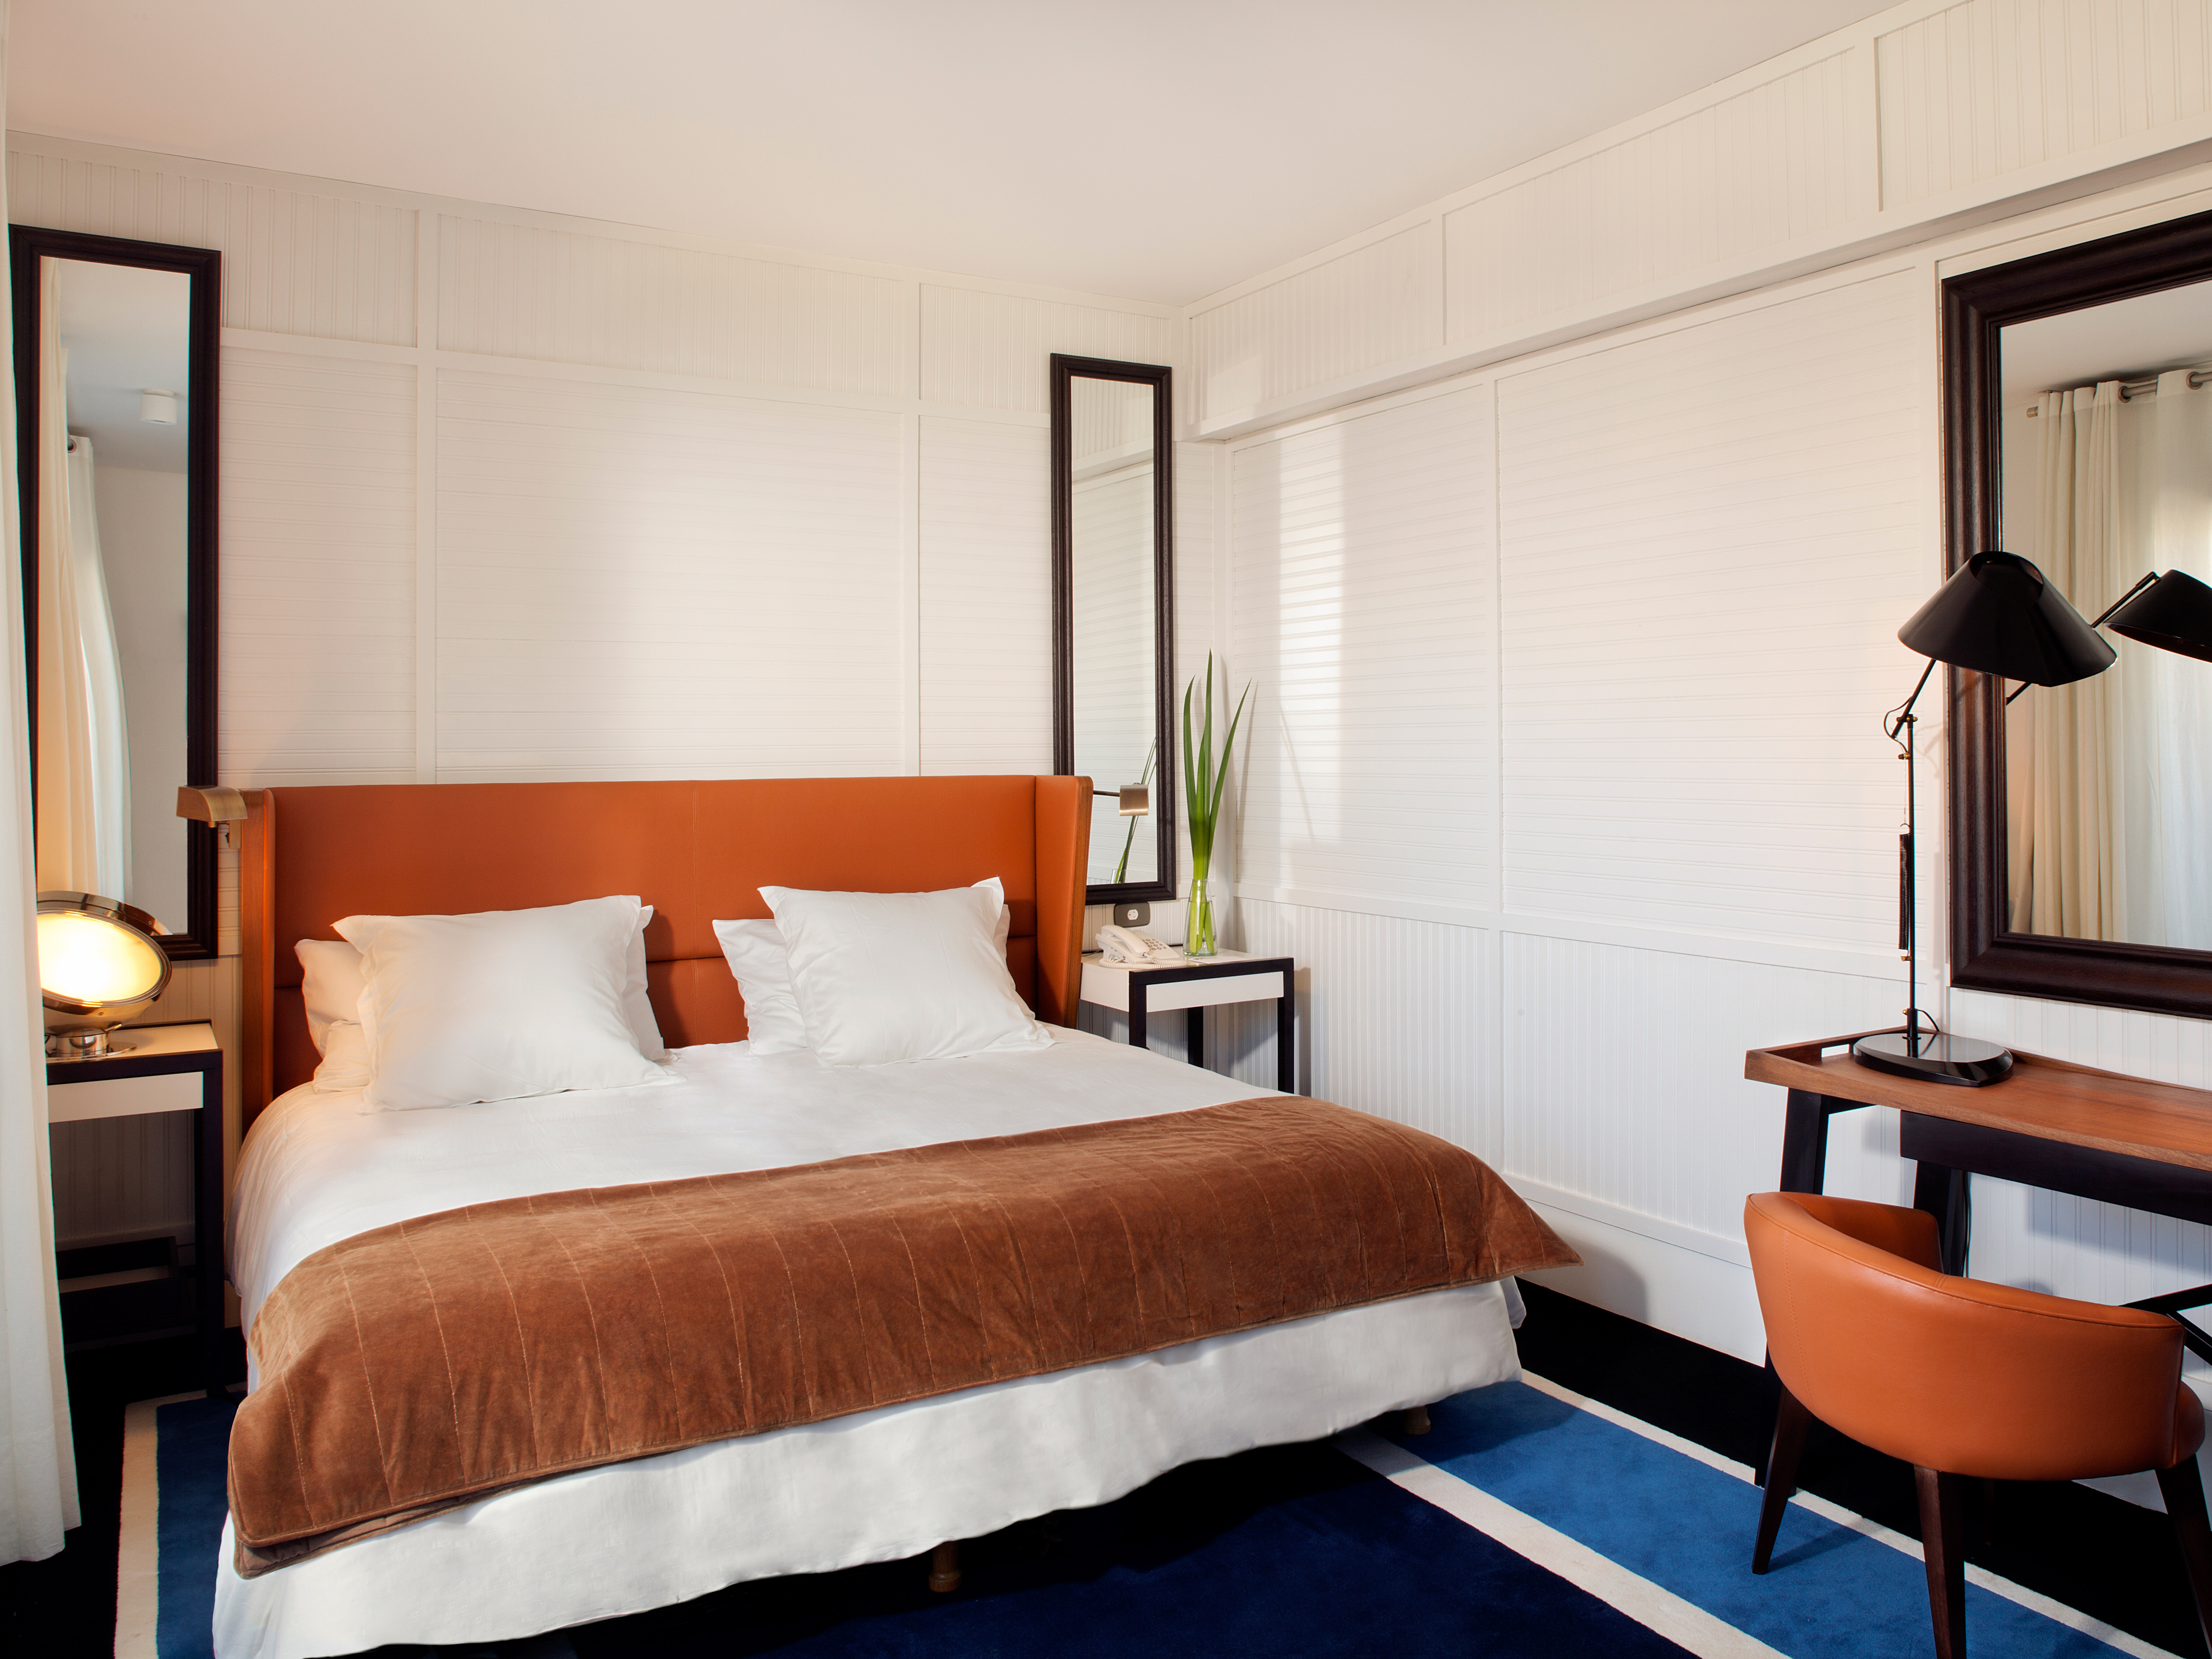 Rooms suites at hotel pulitzer in buenos aires design for Hoteles en buenos aires argentina